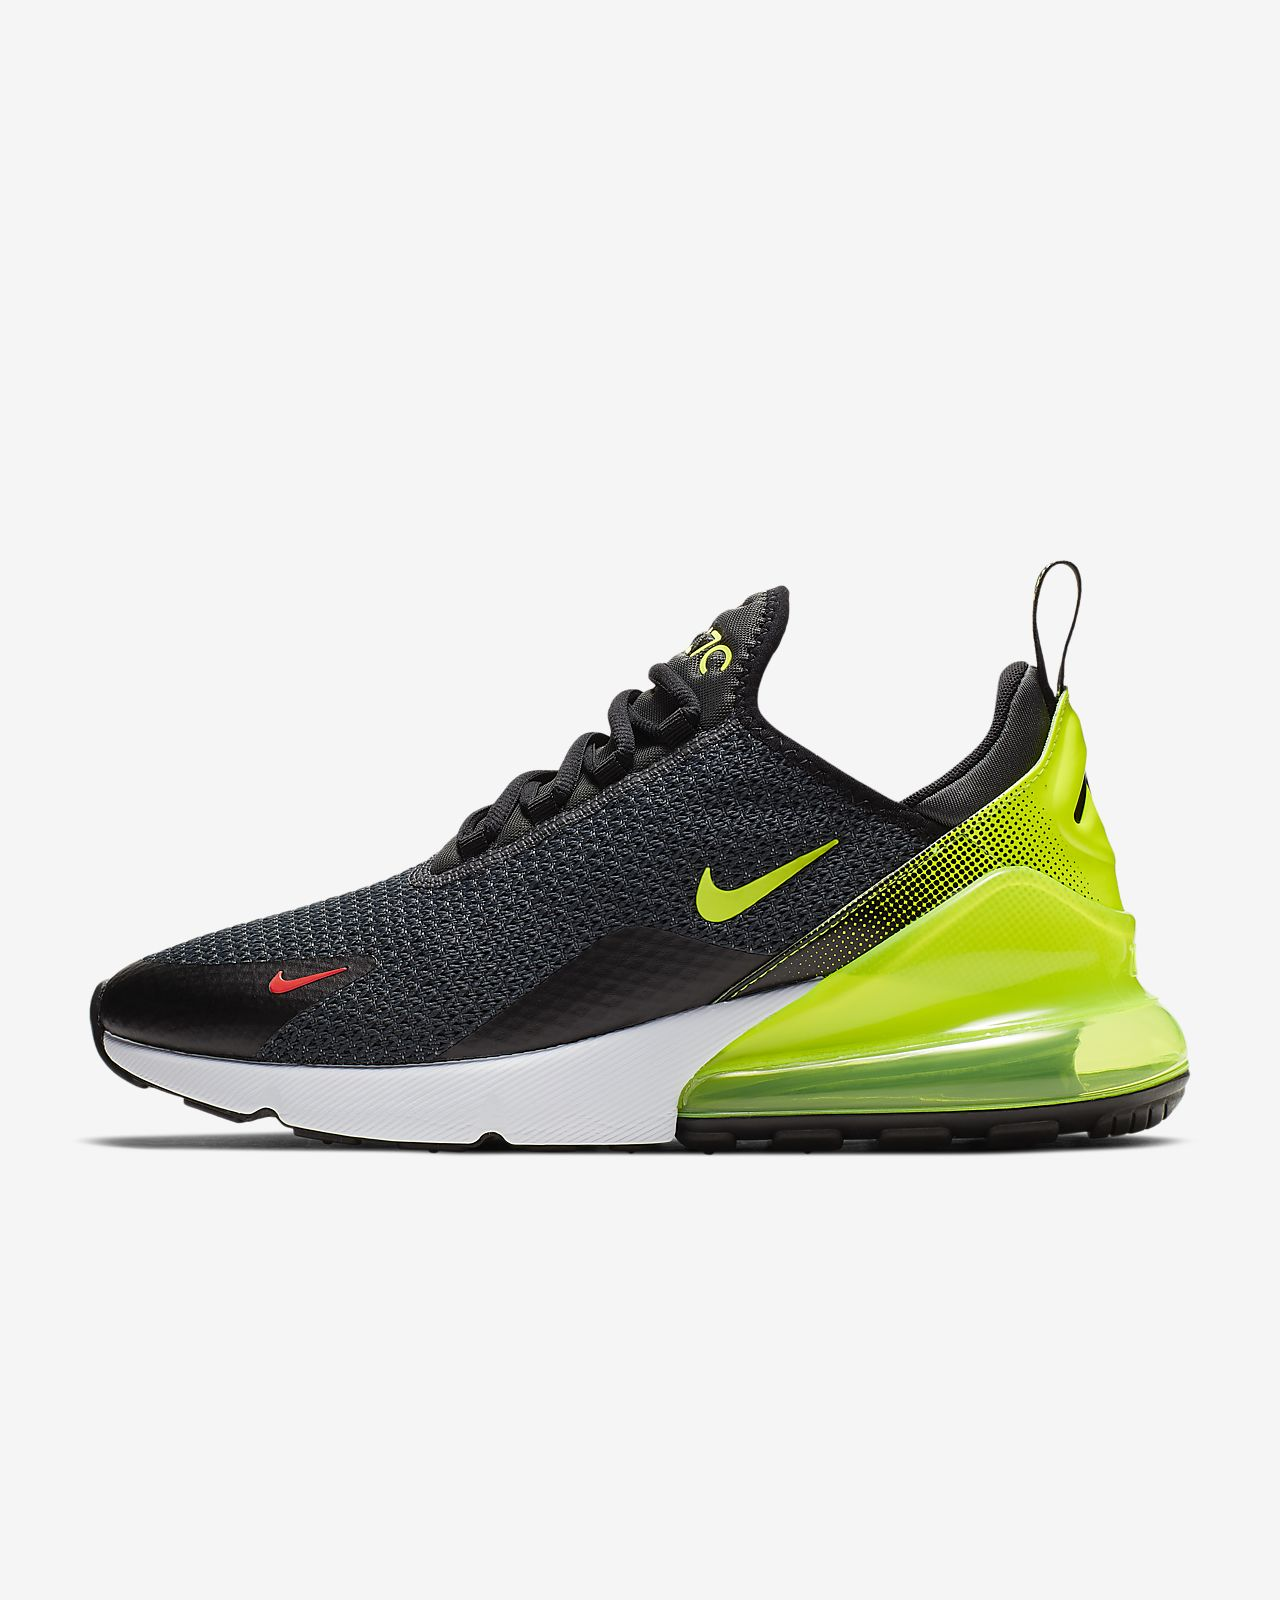 15fa598aab Nike Air Max 270 SE Men's Shoe. Nike.com